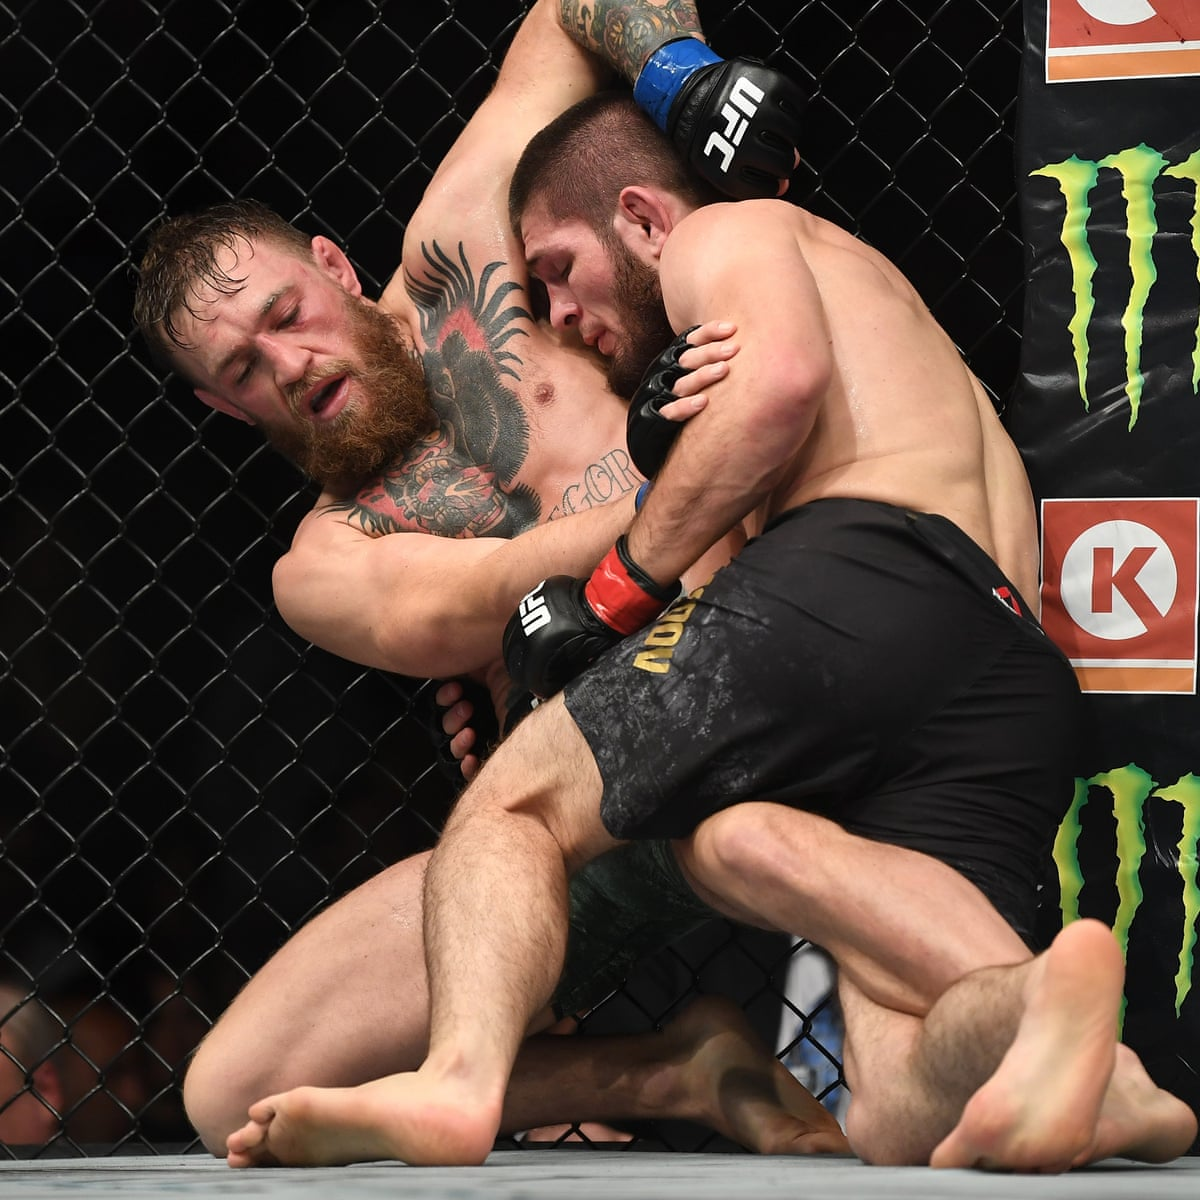 Khabib Nurmagomedov And Conor Mcgregor Suspended For Ufc 229 Brawl Ufc The Guardian